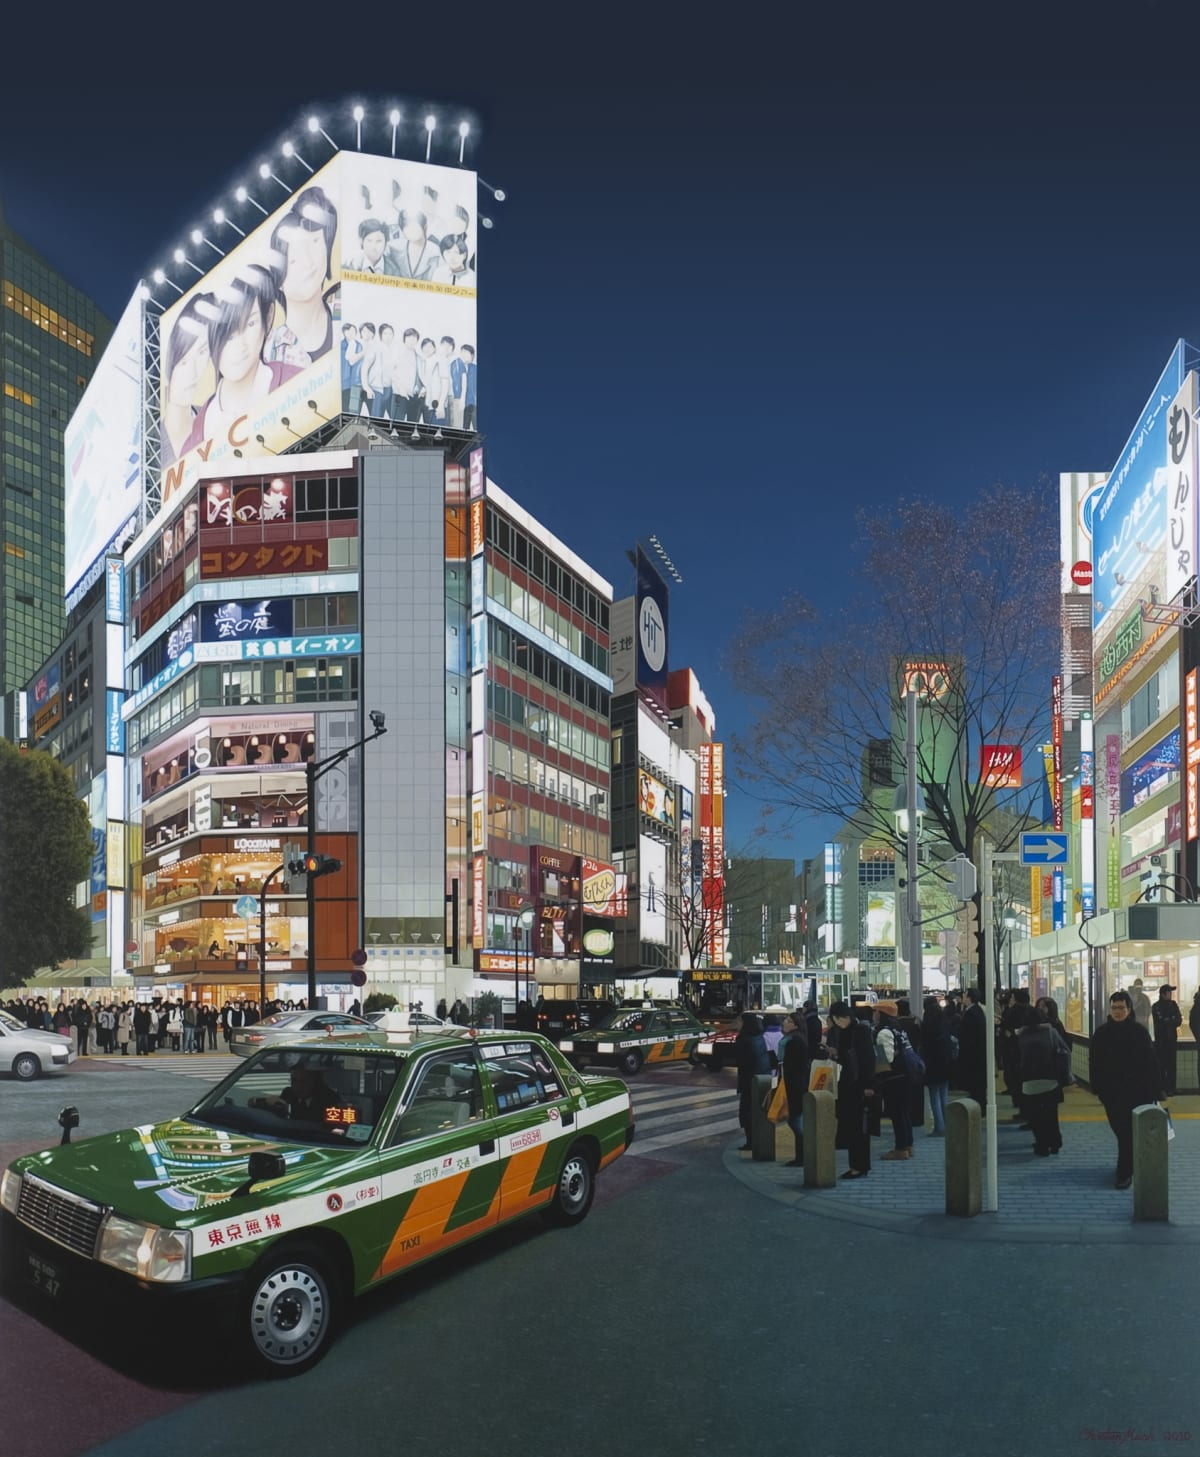 Christian Marsh Shibuya Crossing at Night, Tokyo Oil on canvas 170 x 140 cm